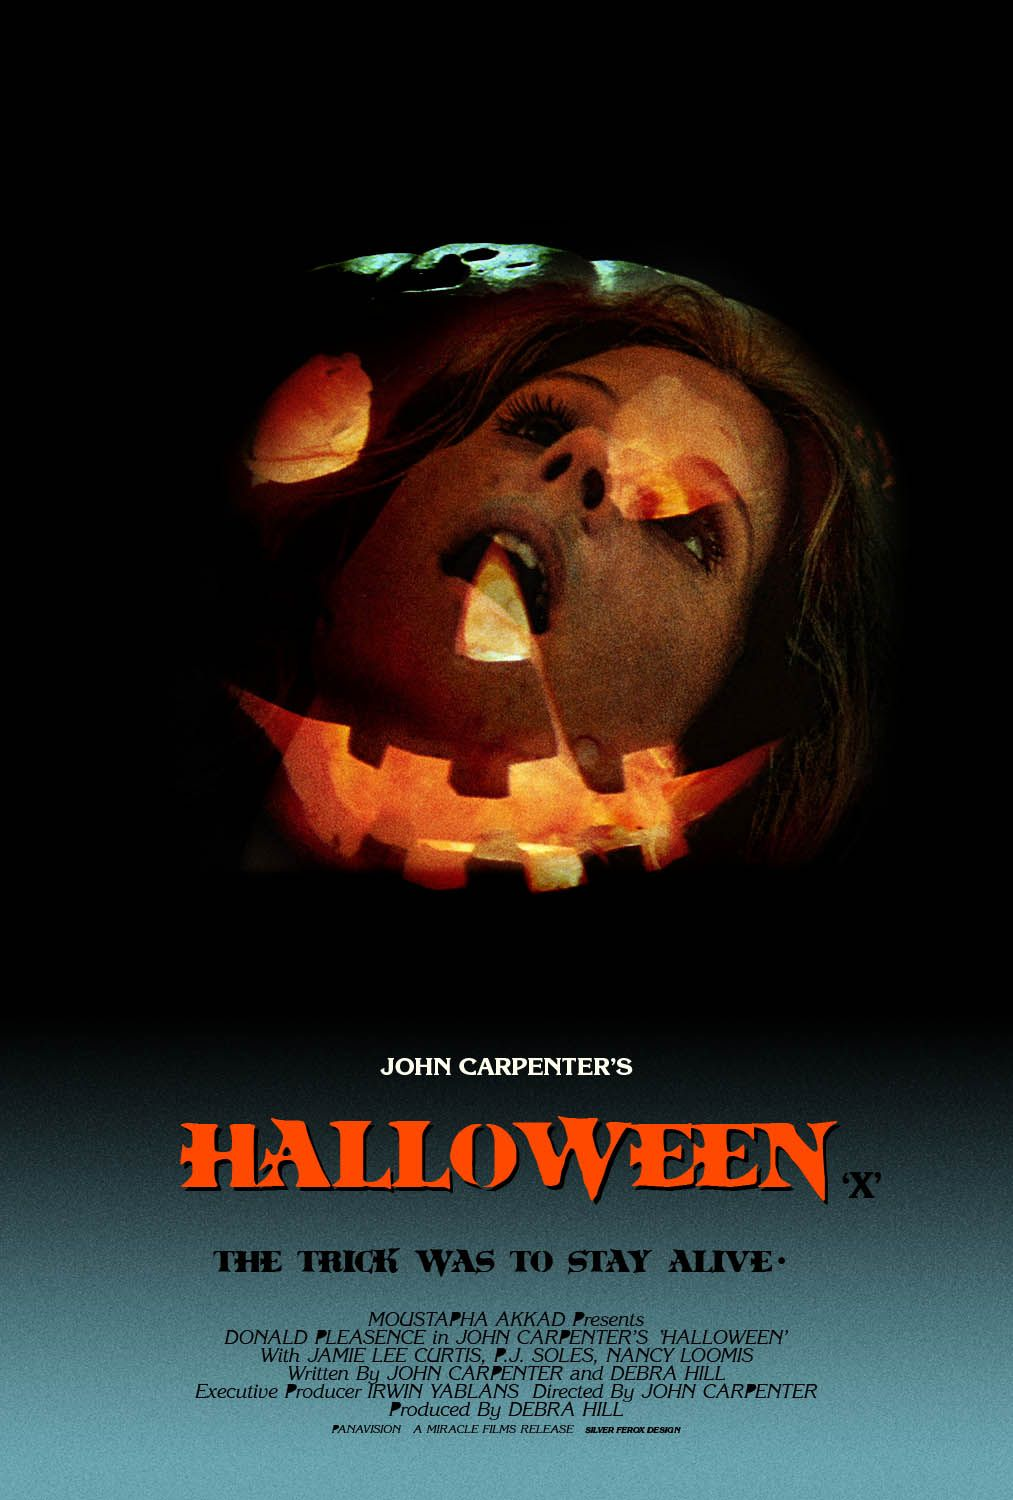 Halloween (1978) Halloween movie poster, Halloween film